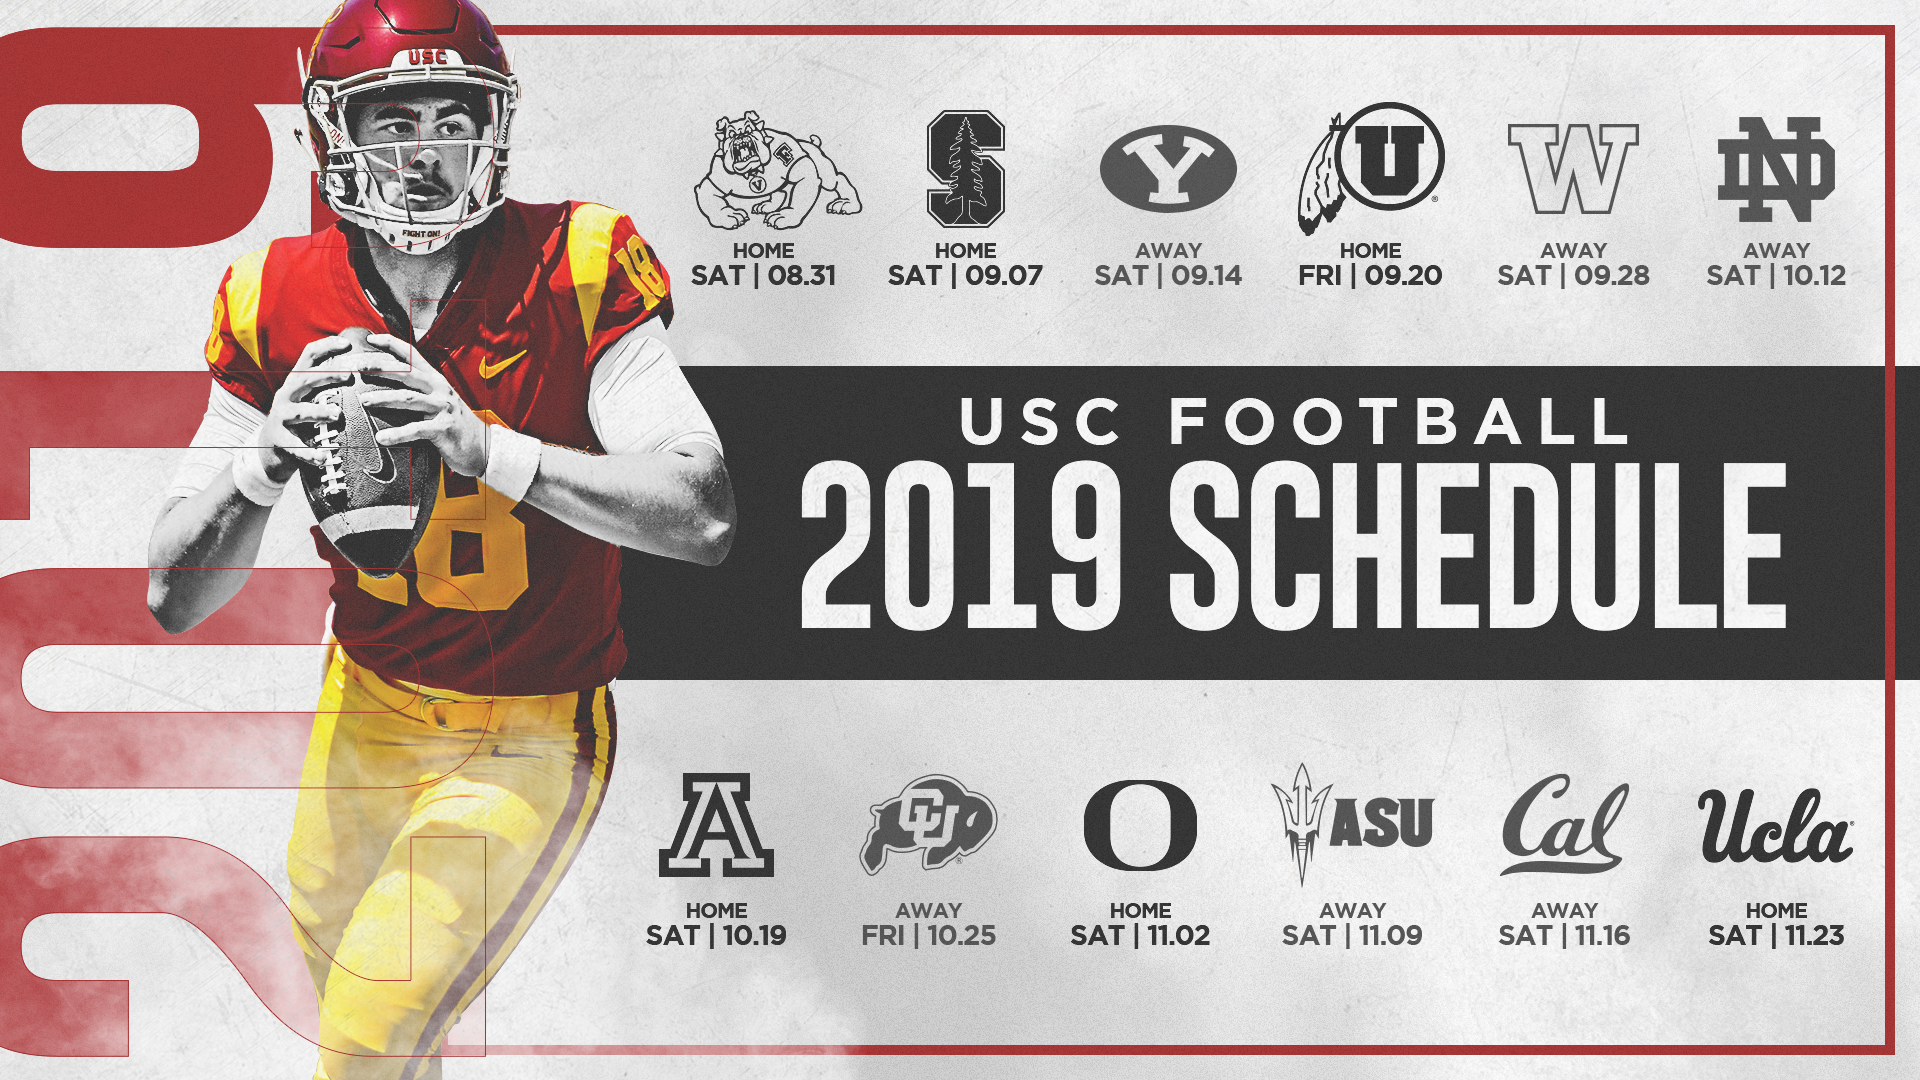 Wsu Football Schedule 2019 USC's 2019 Football Schedule Announced   USC Athletics